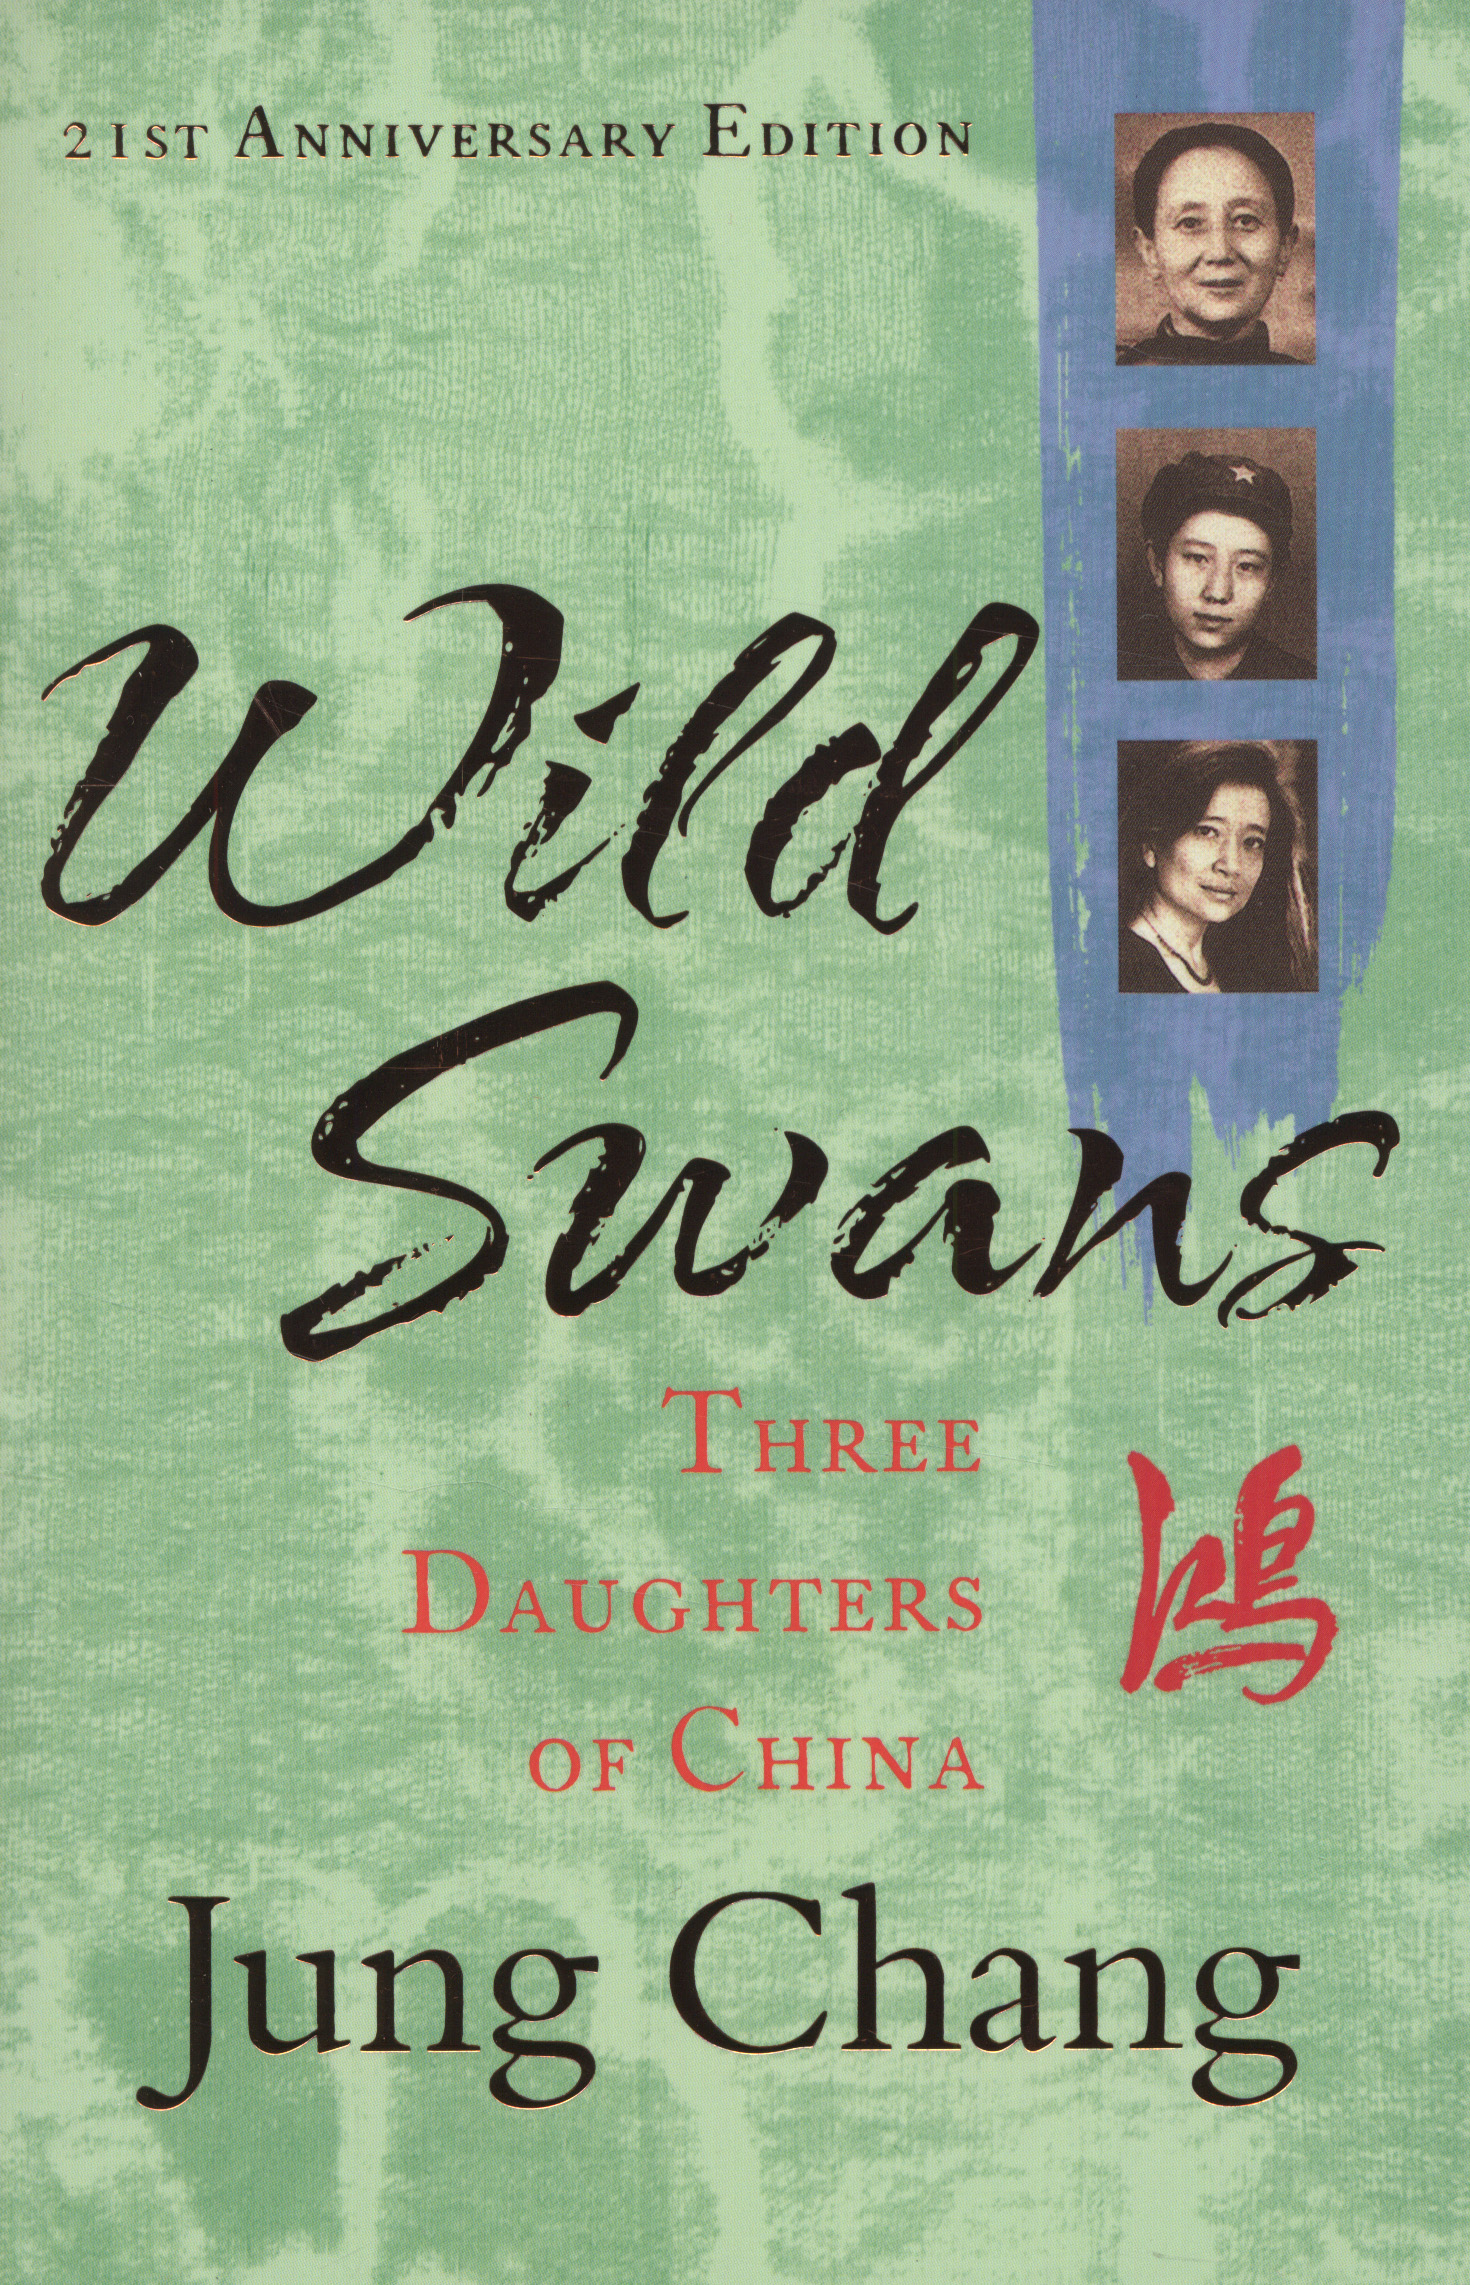 a review of jung changs book wild swans Jung chang (simplified chinese: 张戎 traditional chinese: 張戎 pinyin: zhāng róng wade-giles: chang jung, born march 25, 1952 in yibin, sichuan) is a chinese-born british writer now living in london, best known for her family autobiography wild swans, selling over 10 million copies worldwide but banned in mainland china.